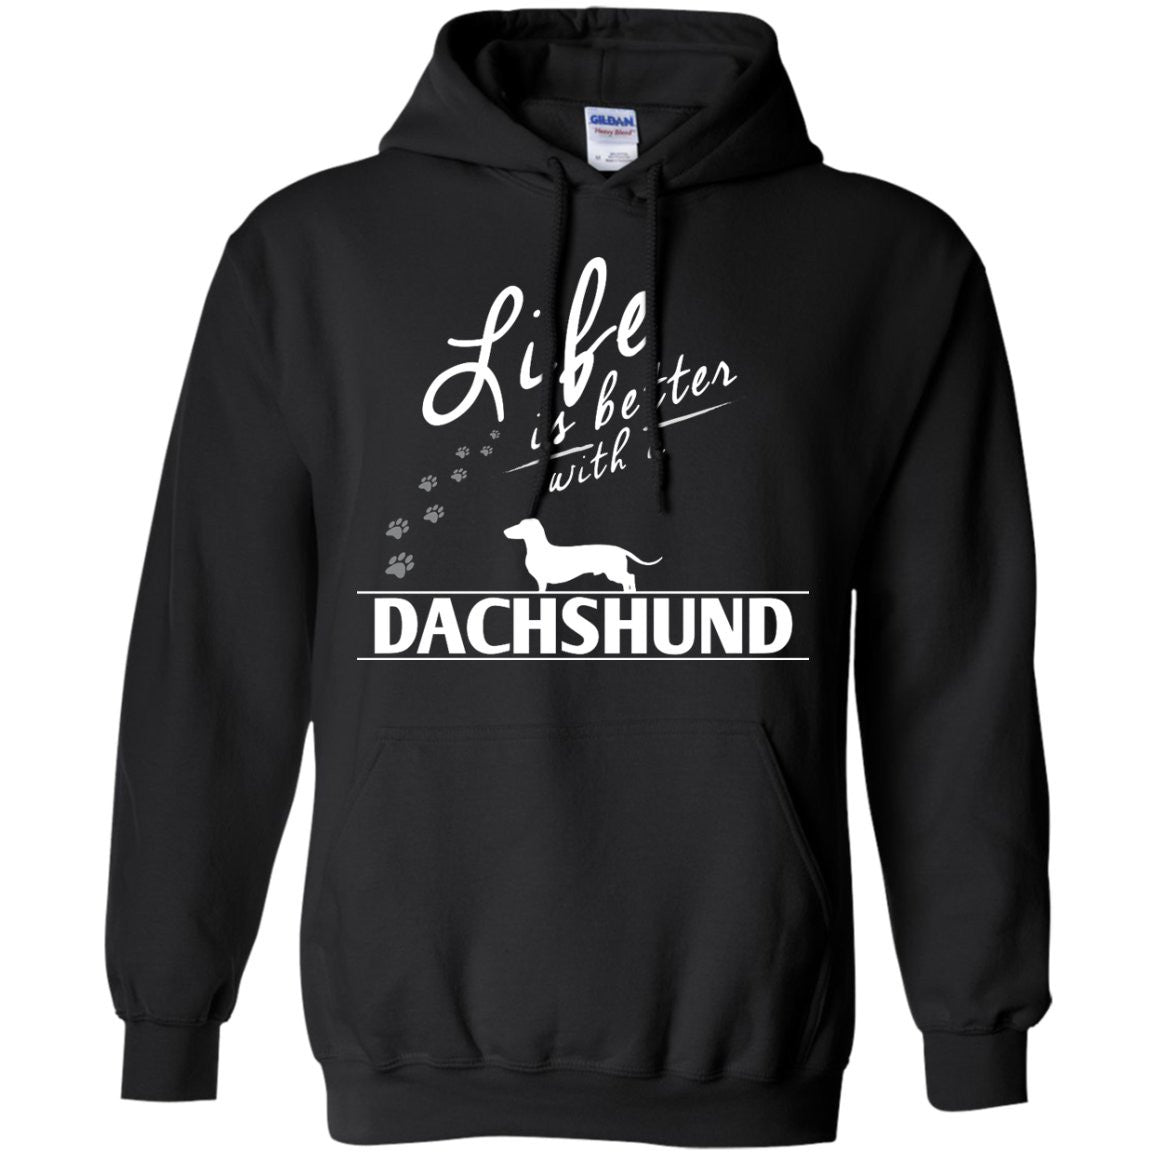 Dachshund - Life Is Better With A Dachshund Paws - Pullover Hoodie 8 oz